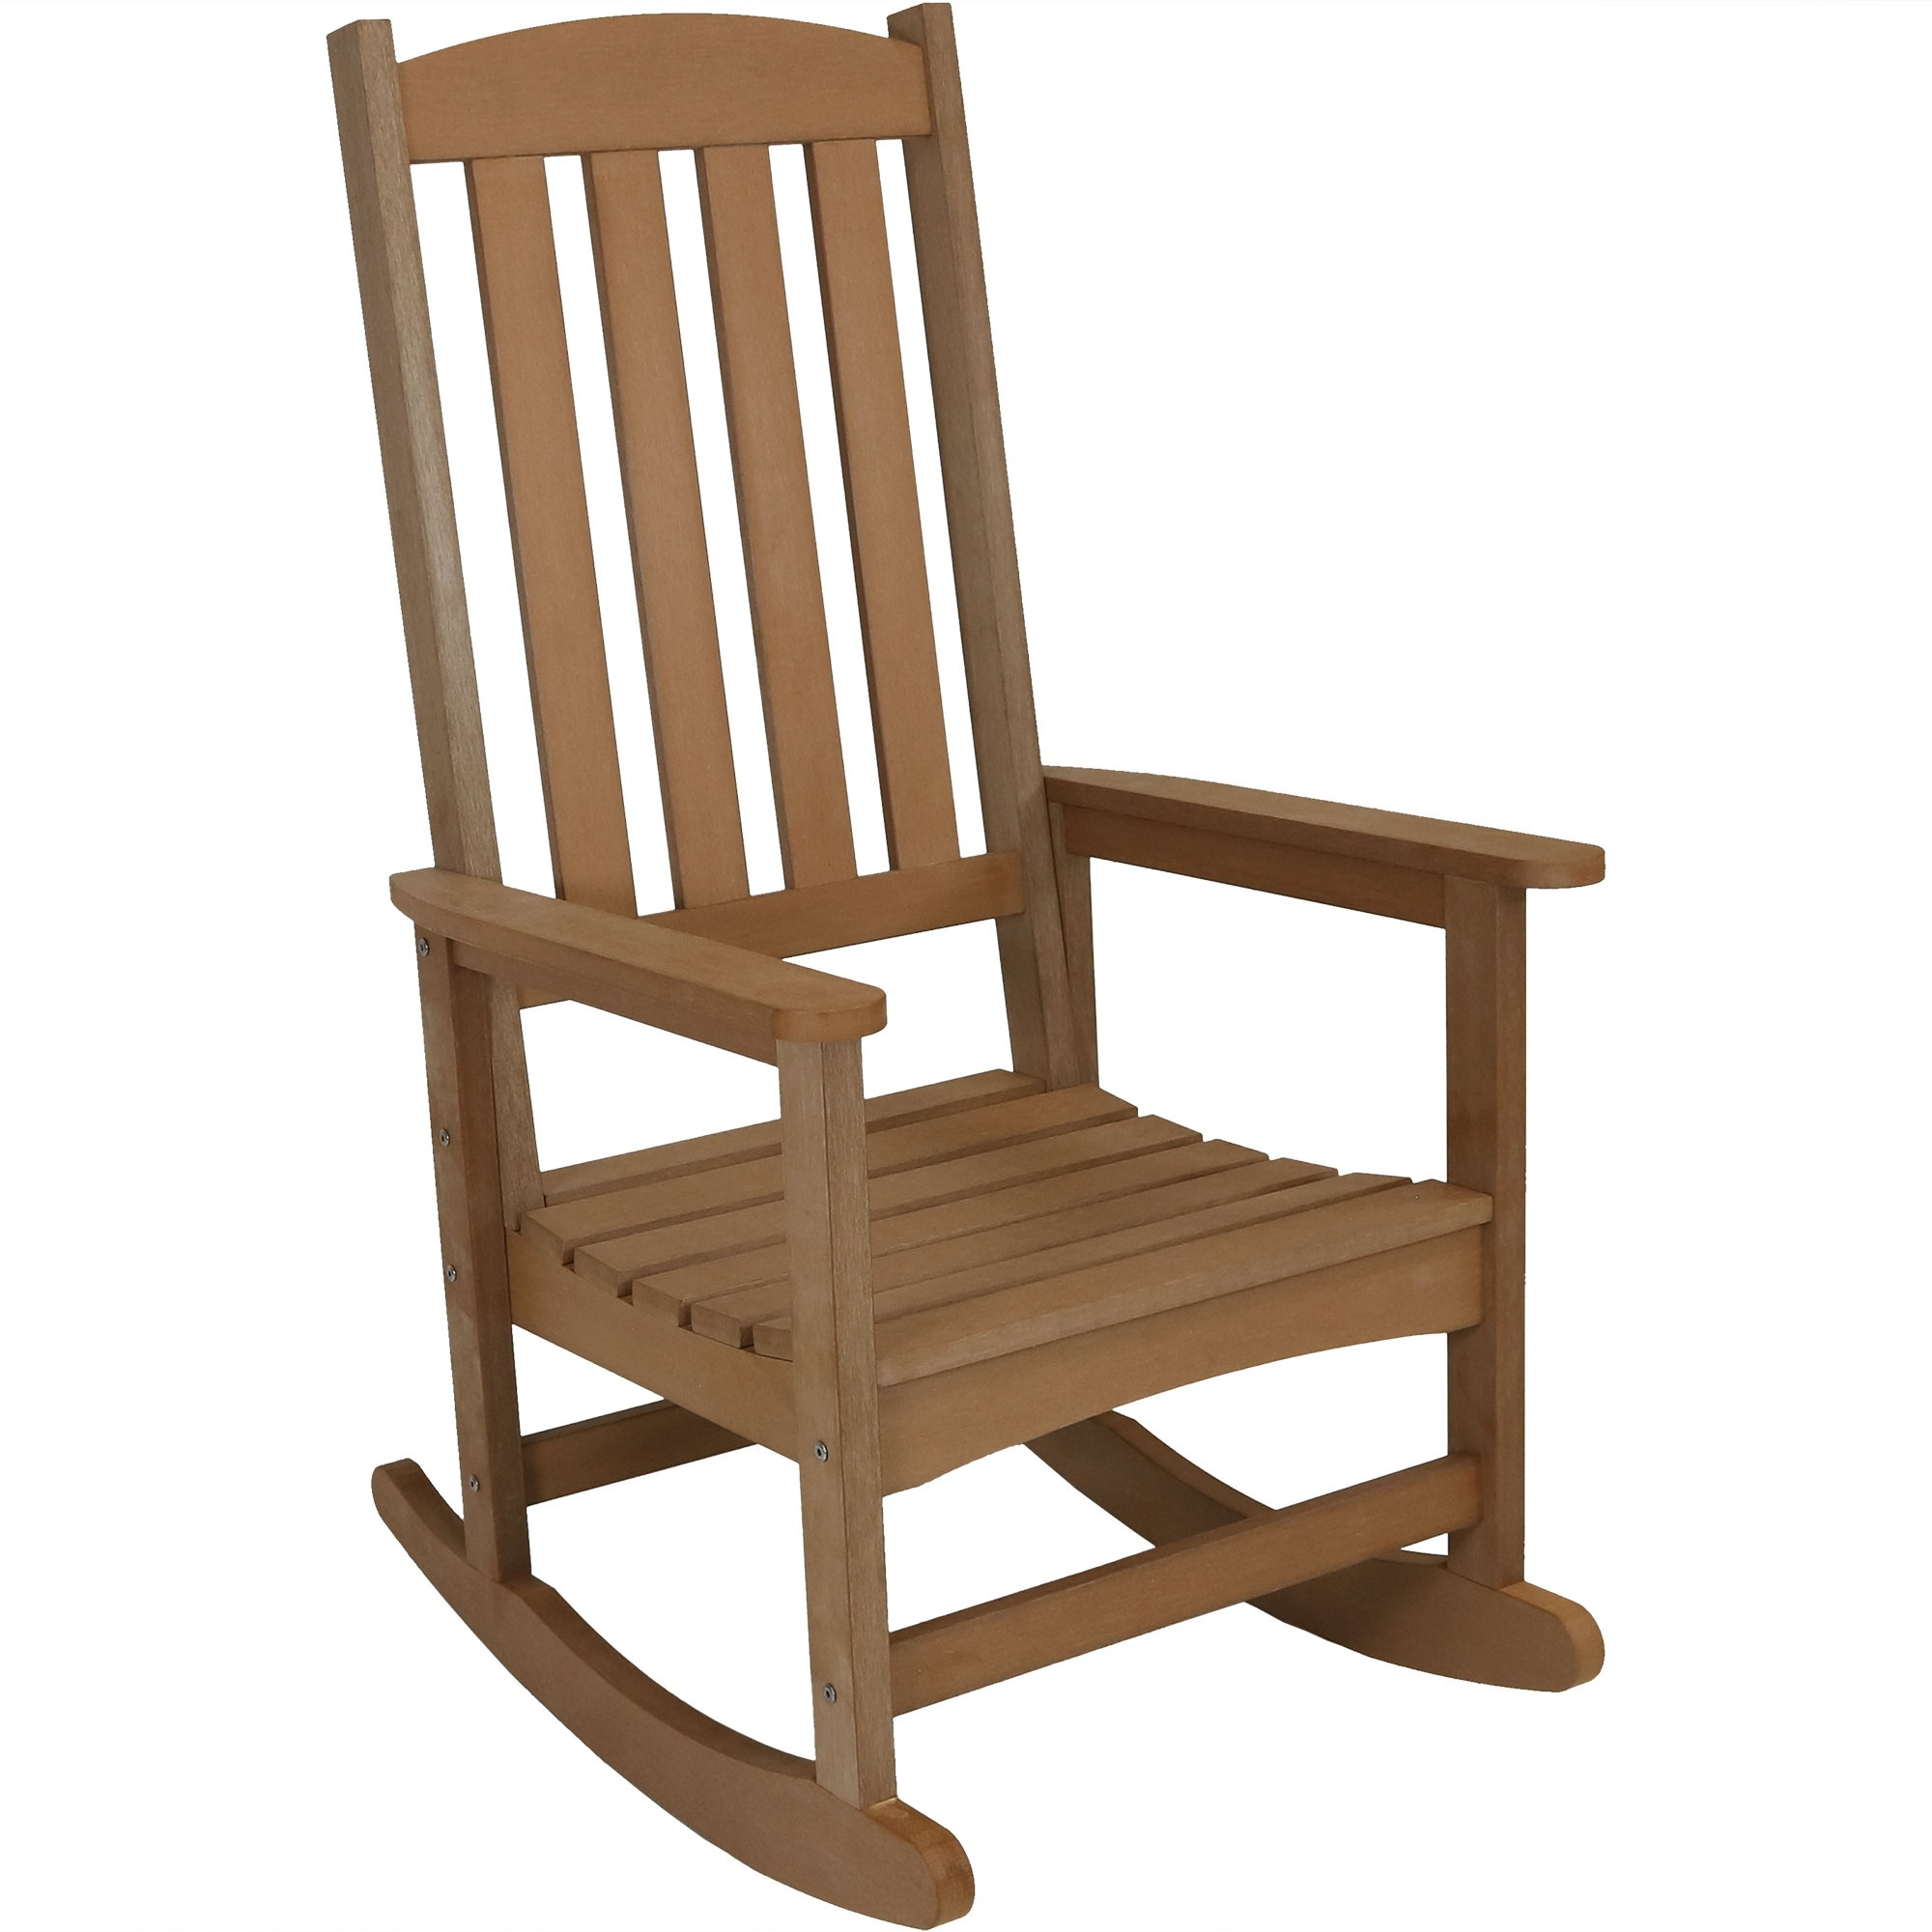 Shop sunnydaze all weather rocking chair with faux wood design multiple colors free shipping today overstock com 22966931